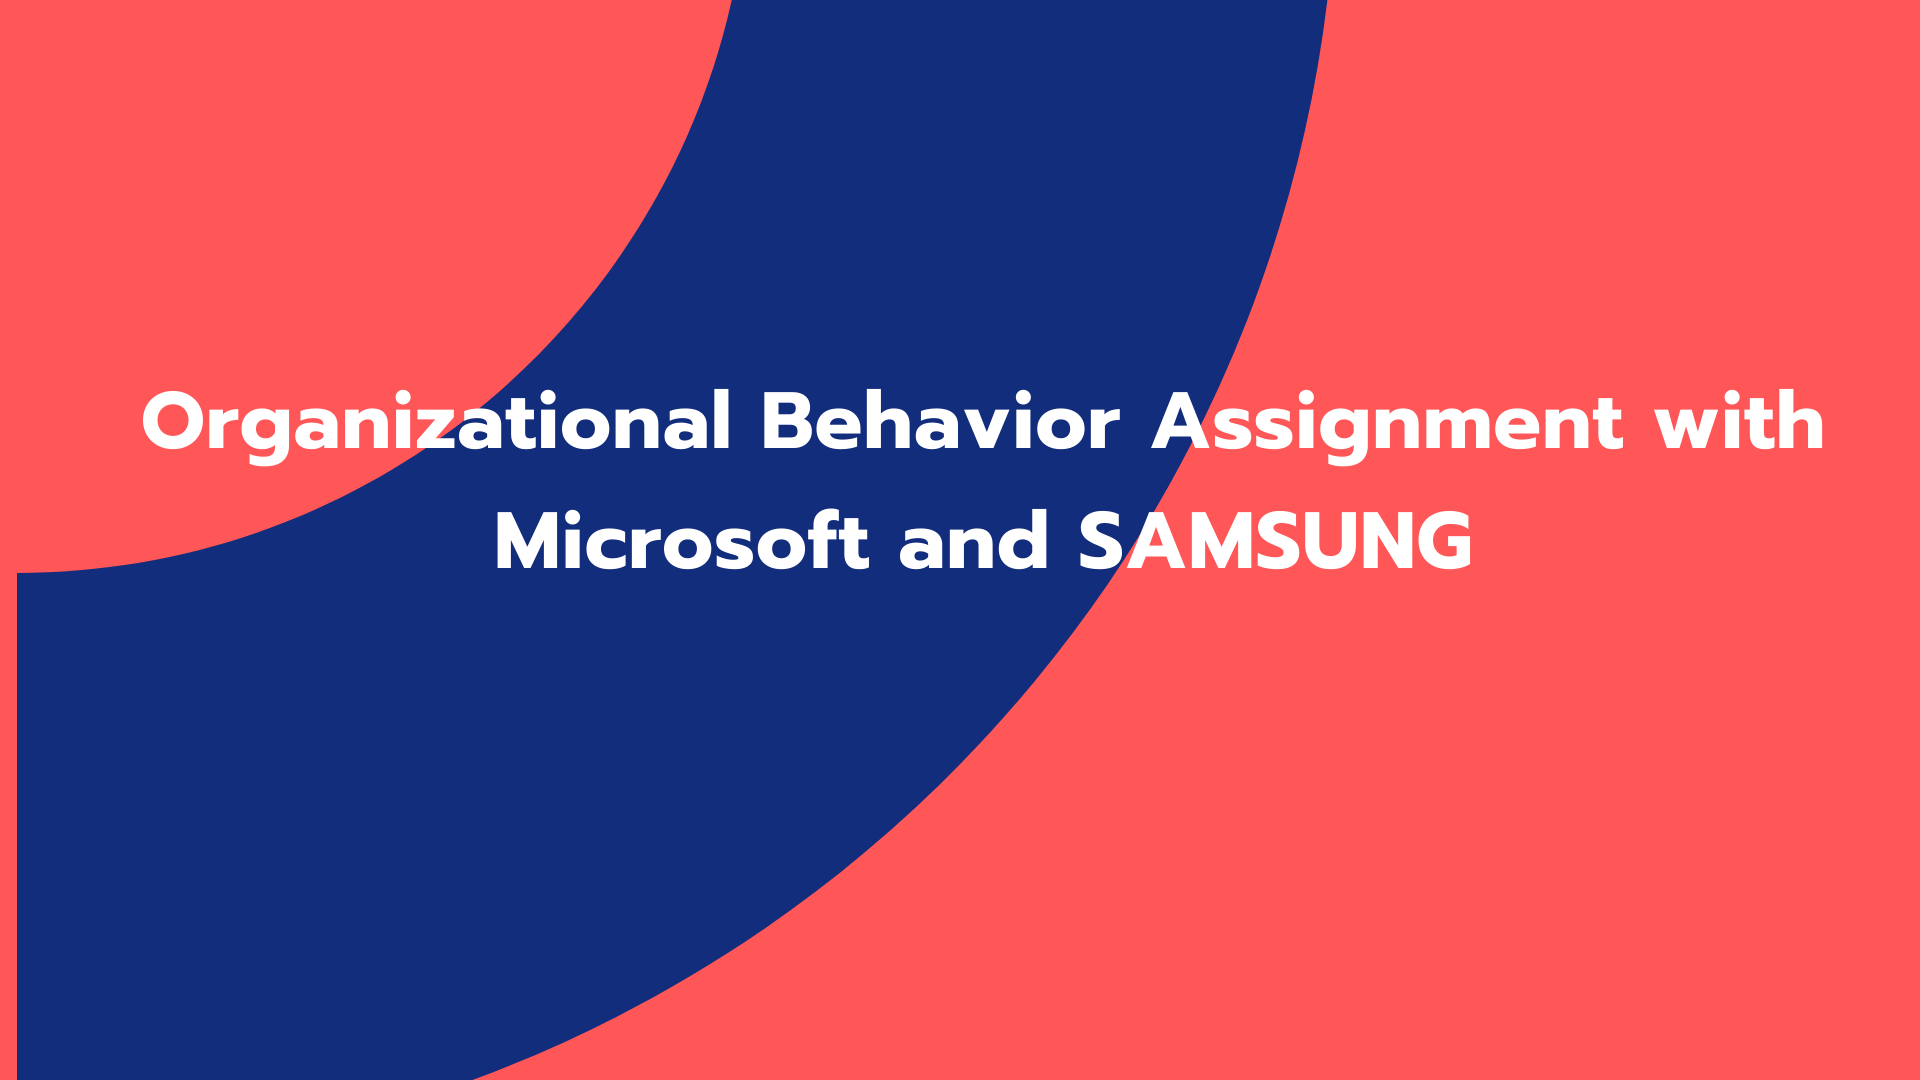 Organizational Behavior Assignment with Microsoft and SAMSUNG